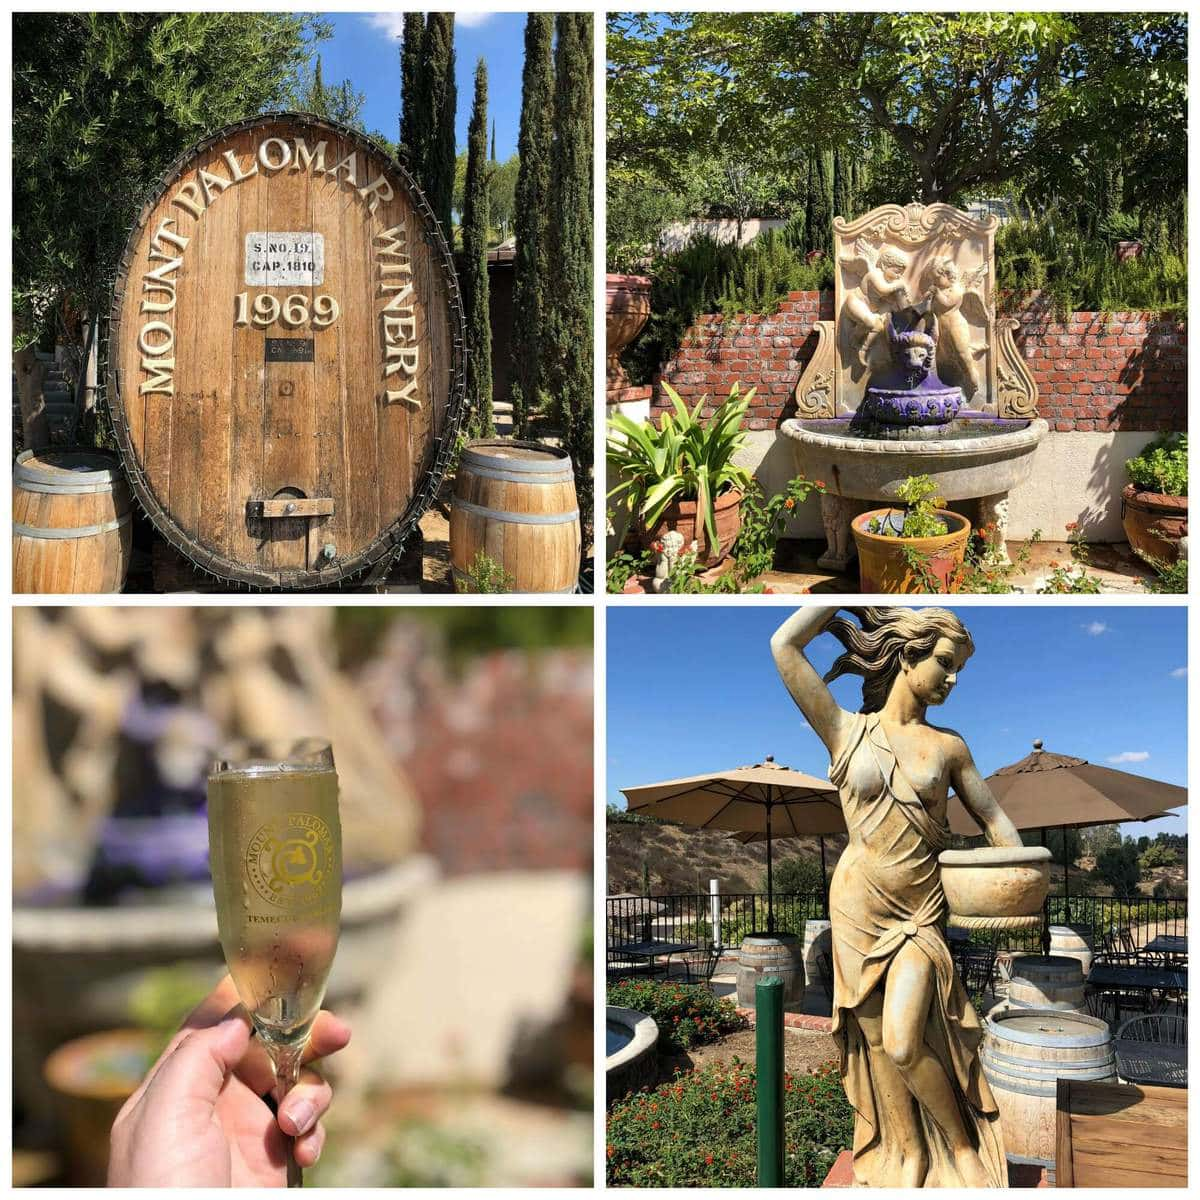 Things to do in Temecula Valley - Wine Tasting | Peace Love and Low Carb